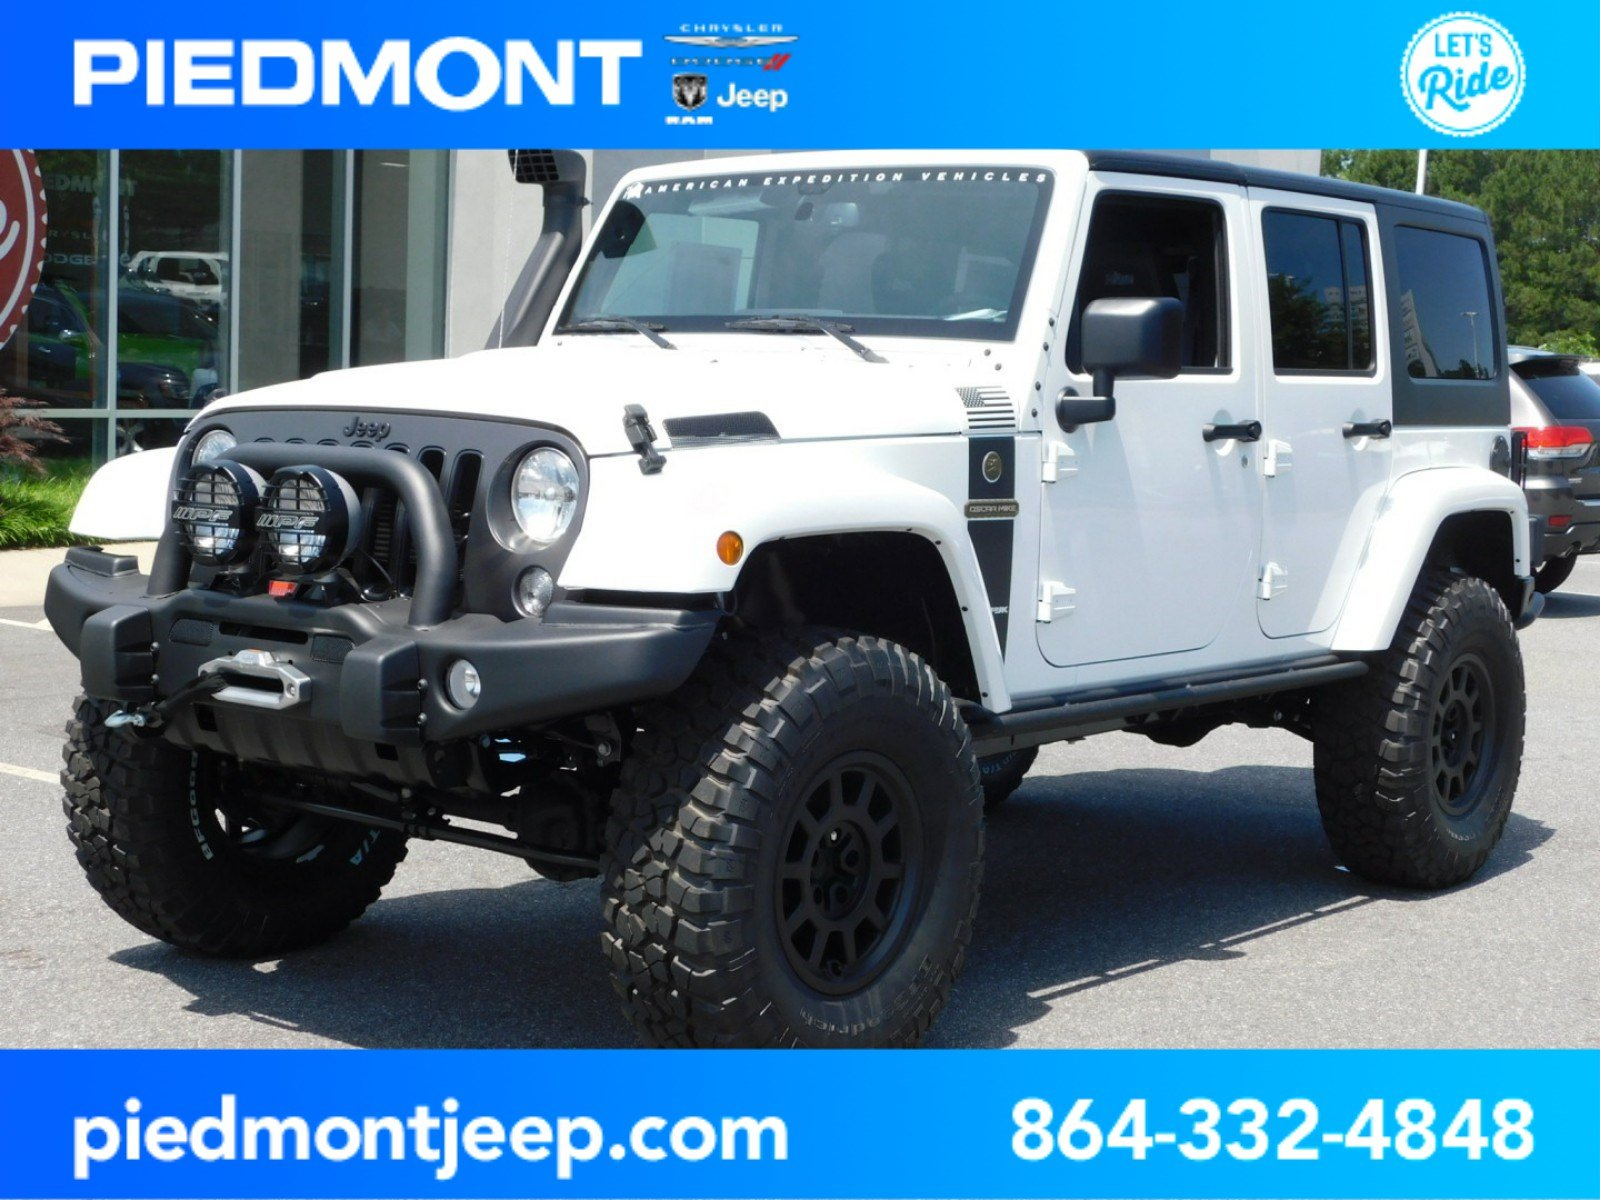 New 2018 JEEP Wrangler Unlimited Freedom Edition AEV